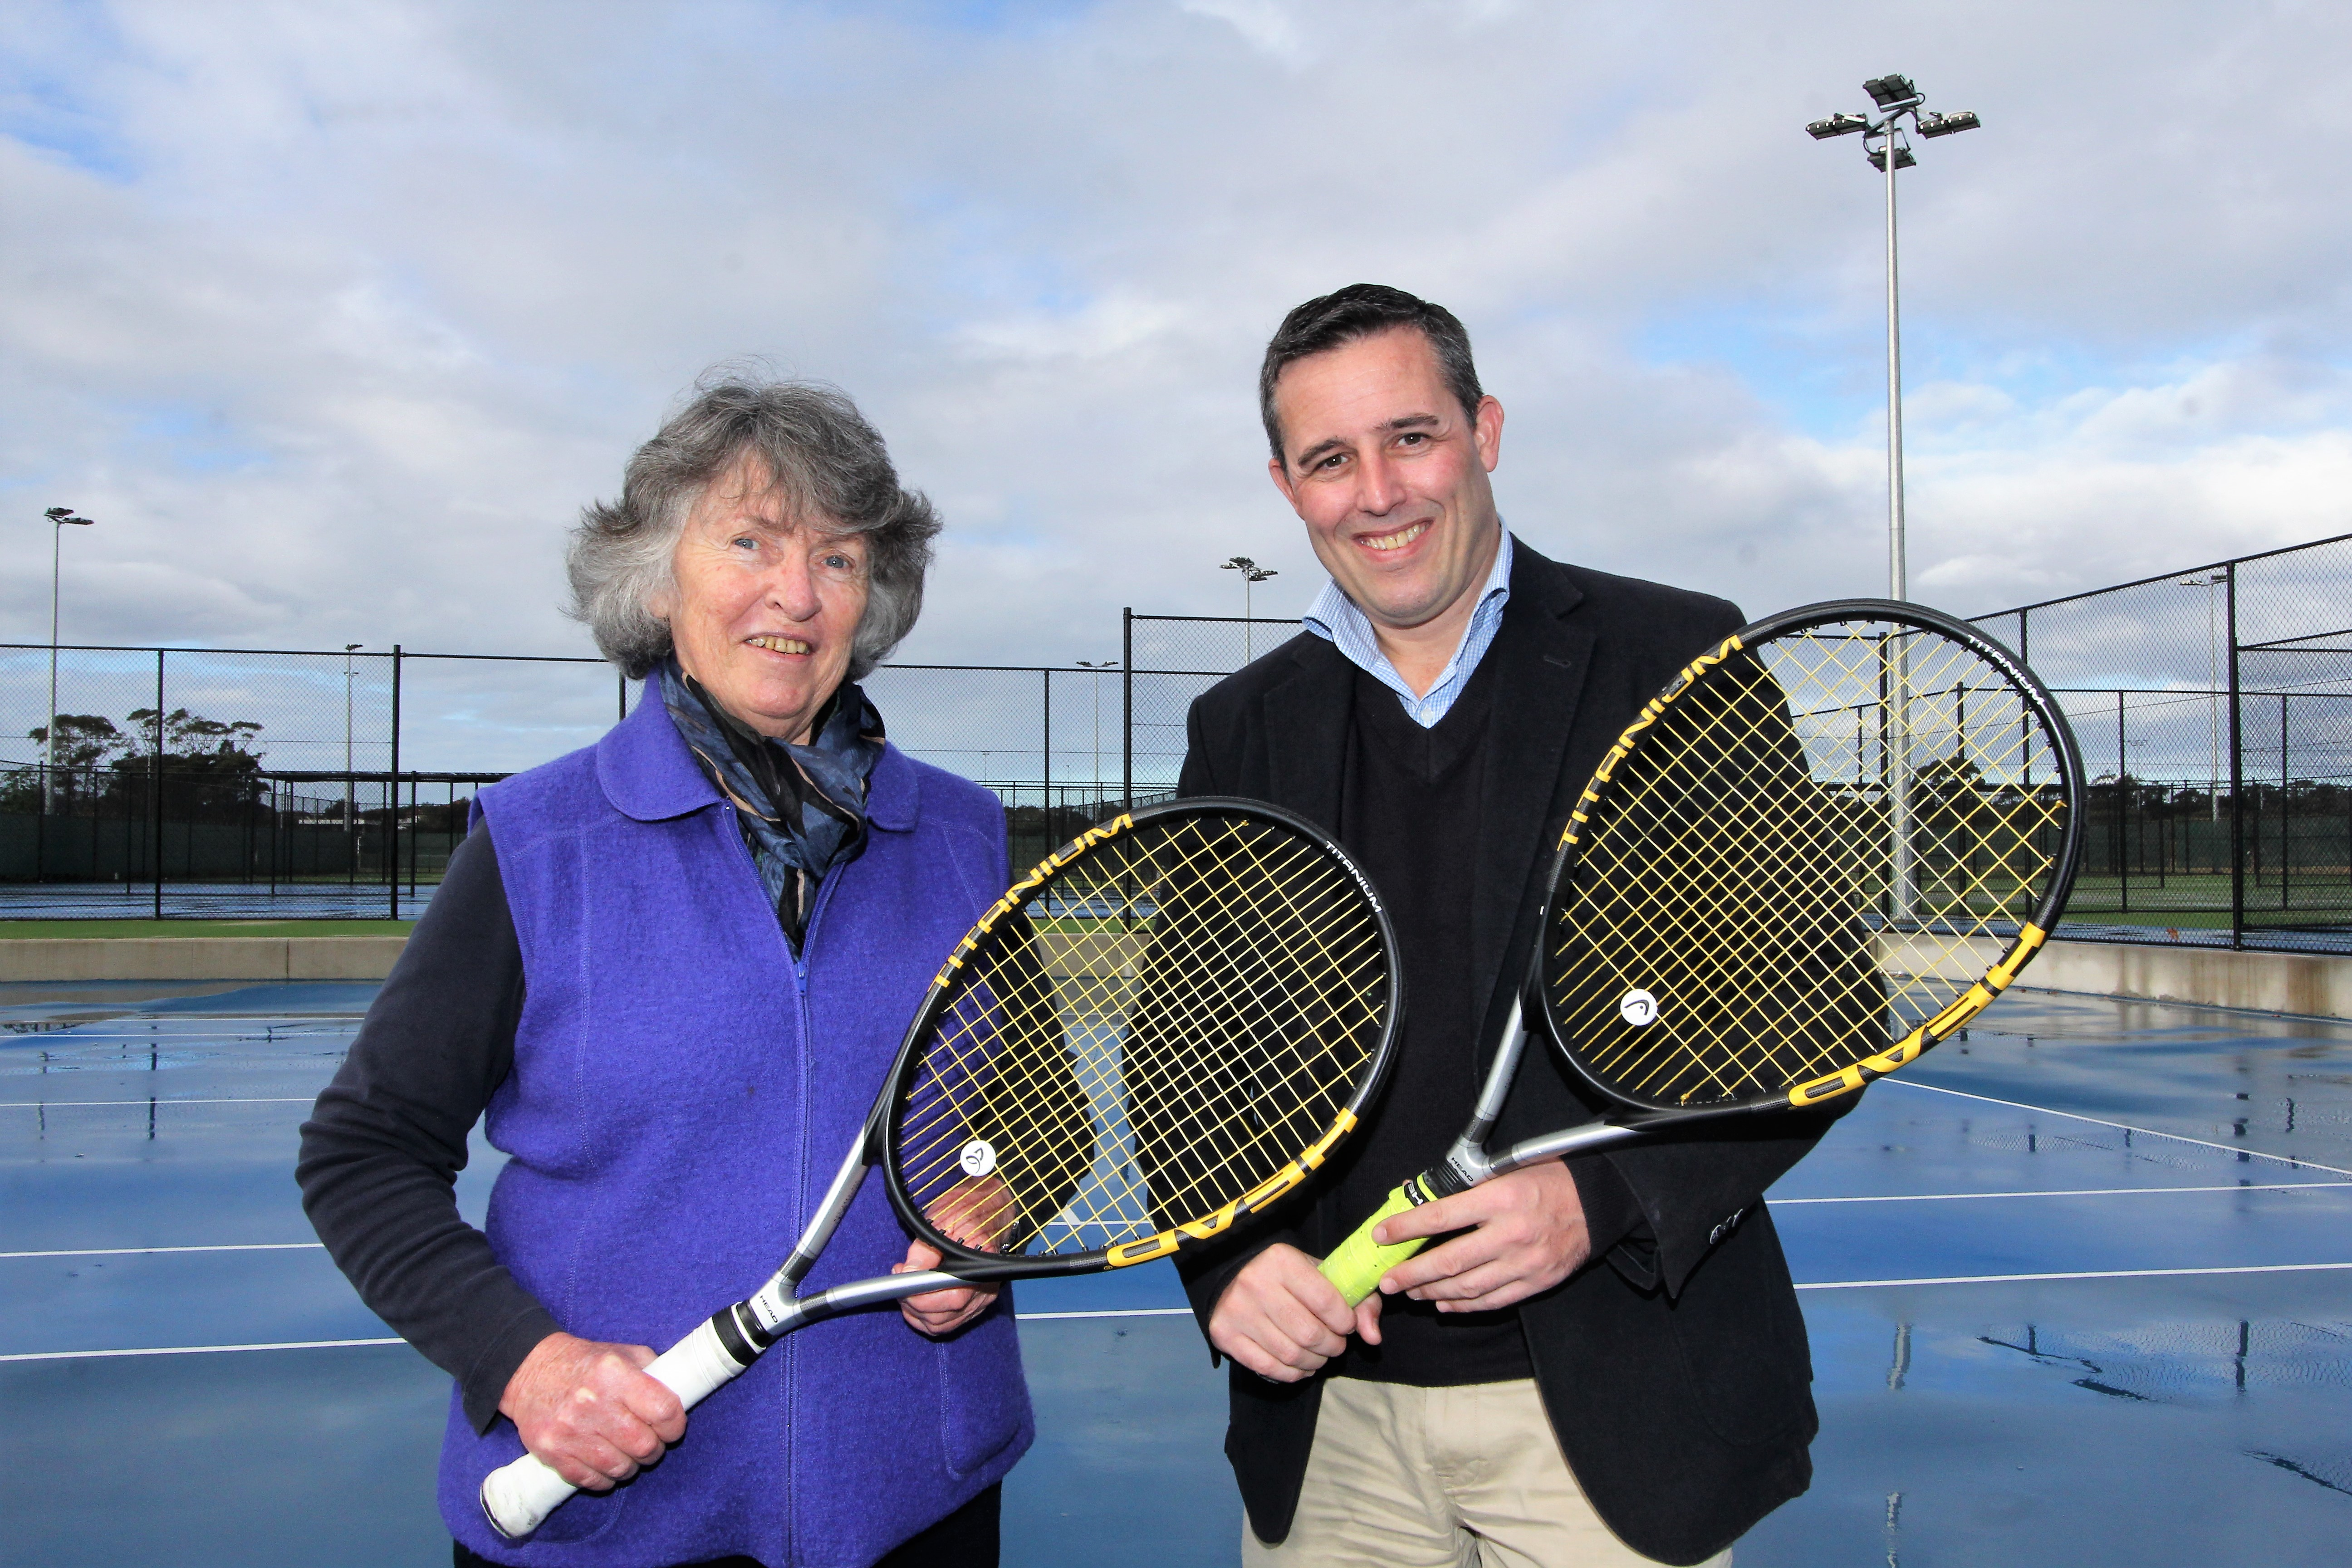 Mayor Kathy Neilson at tennis centre